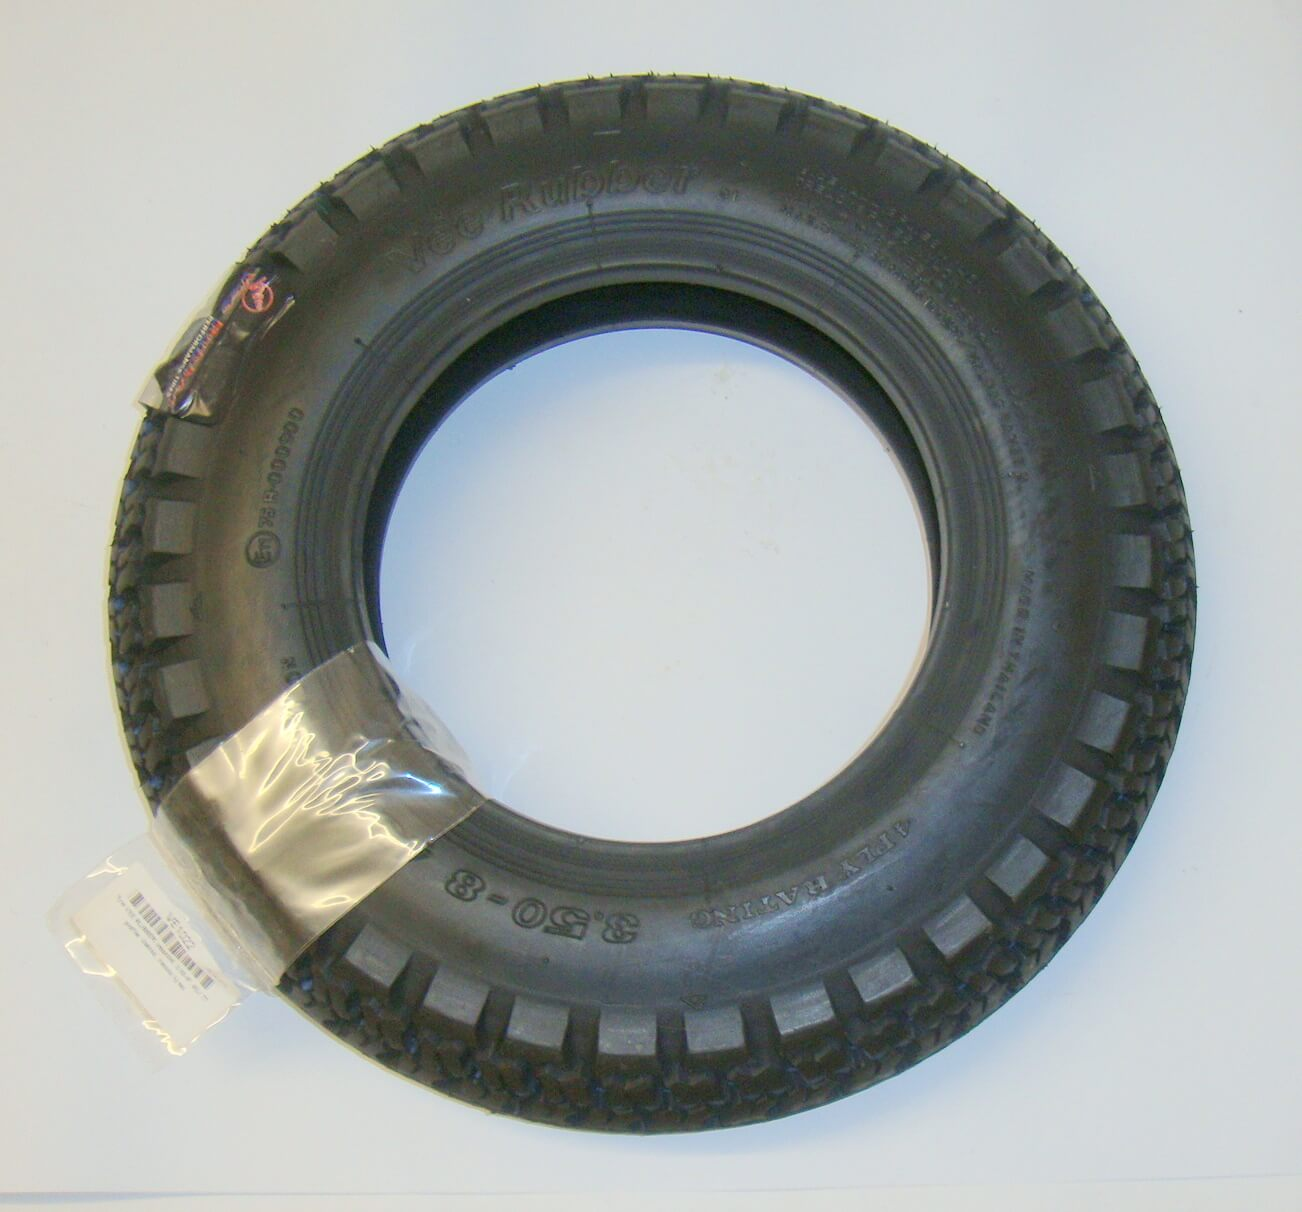 Tire, VEE RUBBER, 3.50 x 8 45 J TT